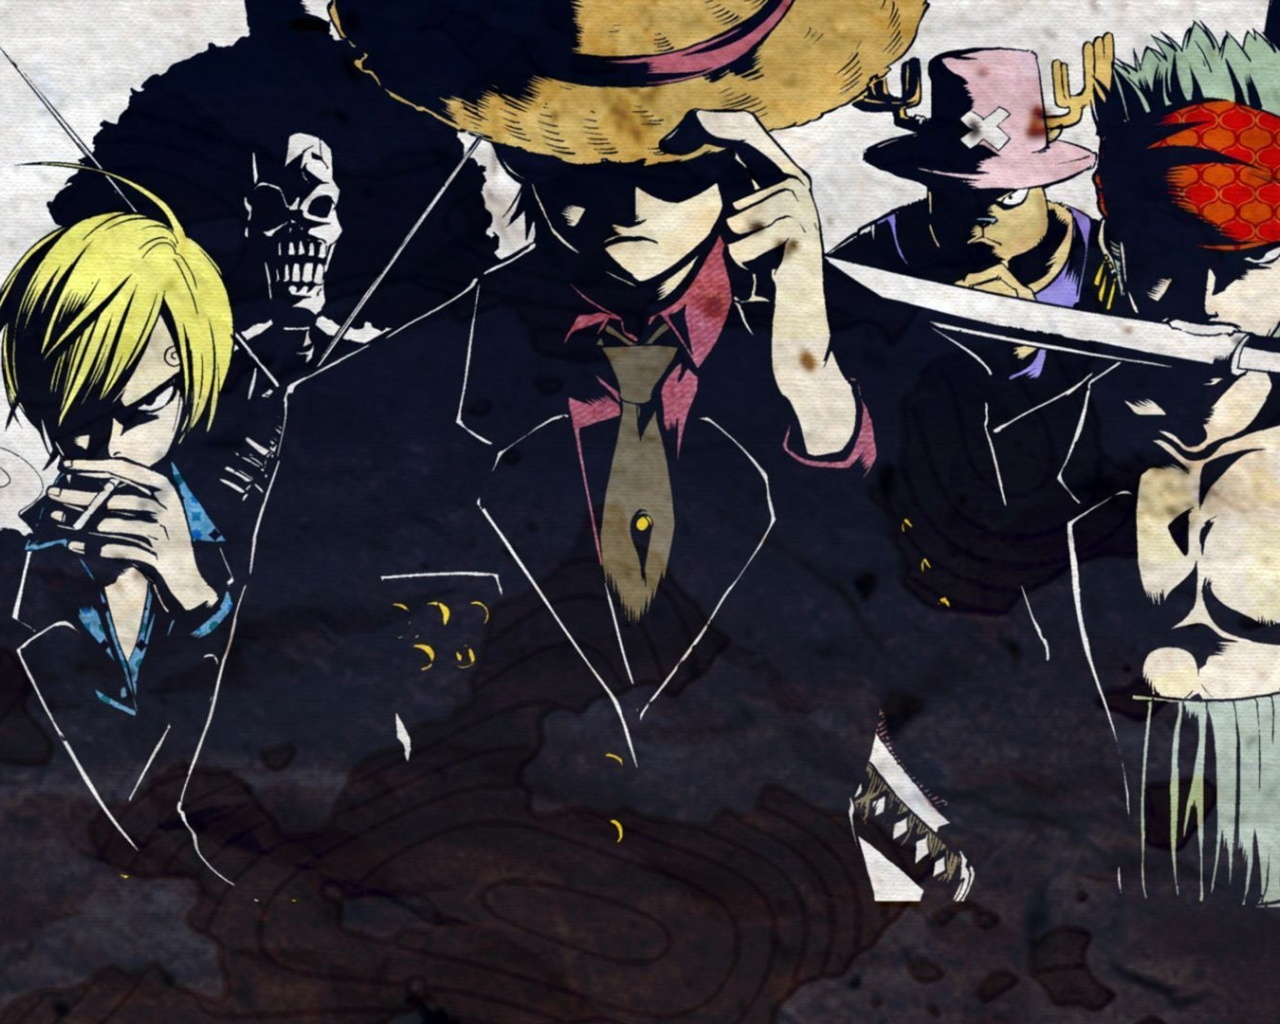 1280x1024 one piece, anime desktop pc and mac wallpaper